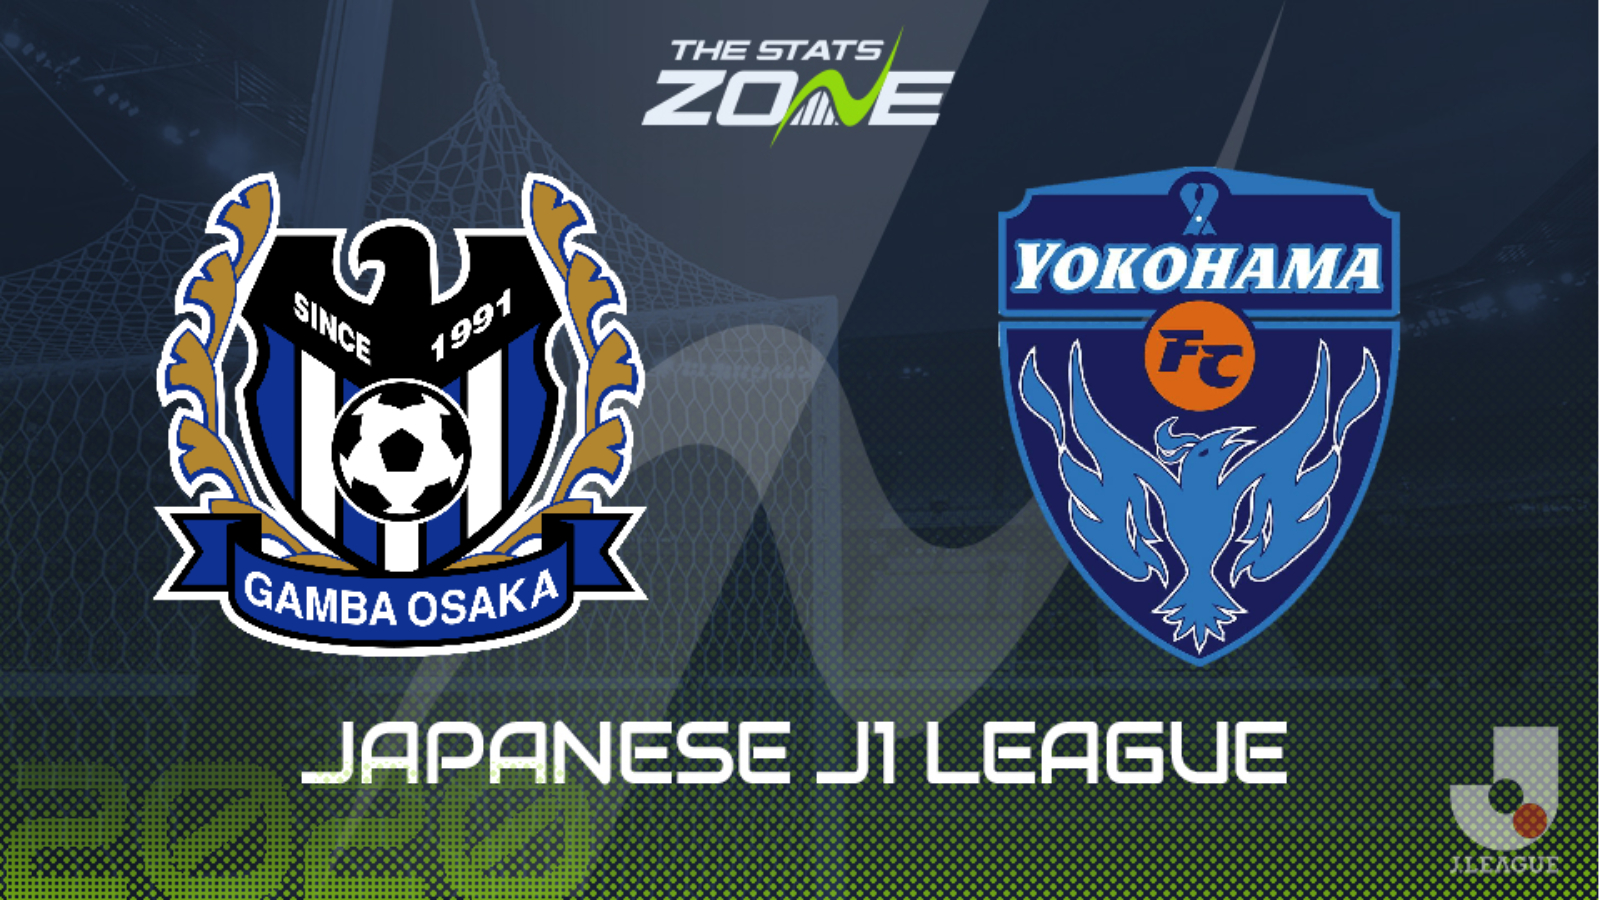 2020 Japanese J1 League Gamba Osaka Vs Yokohama Preview Prediction The Stats Zone